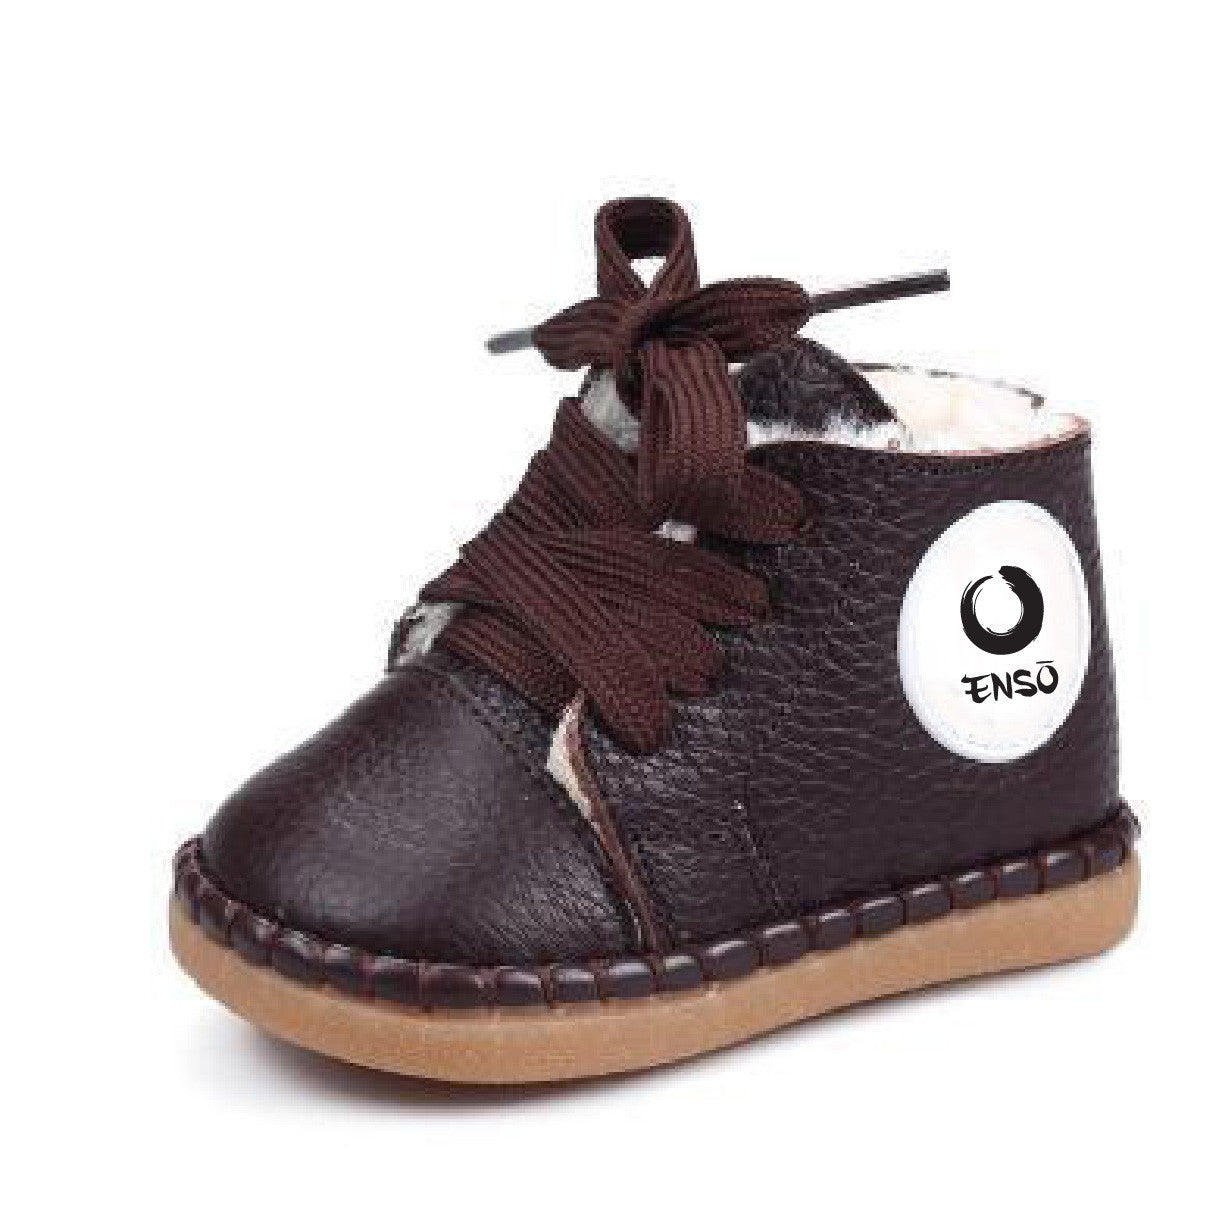 enso infant shoes boots brown